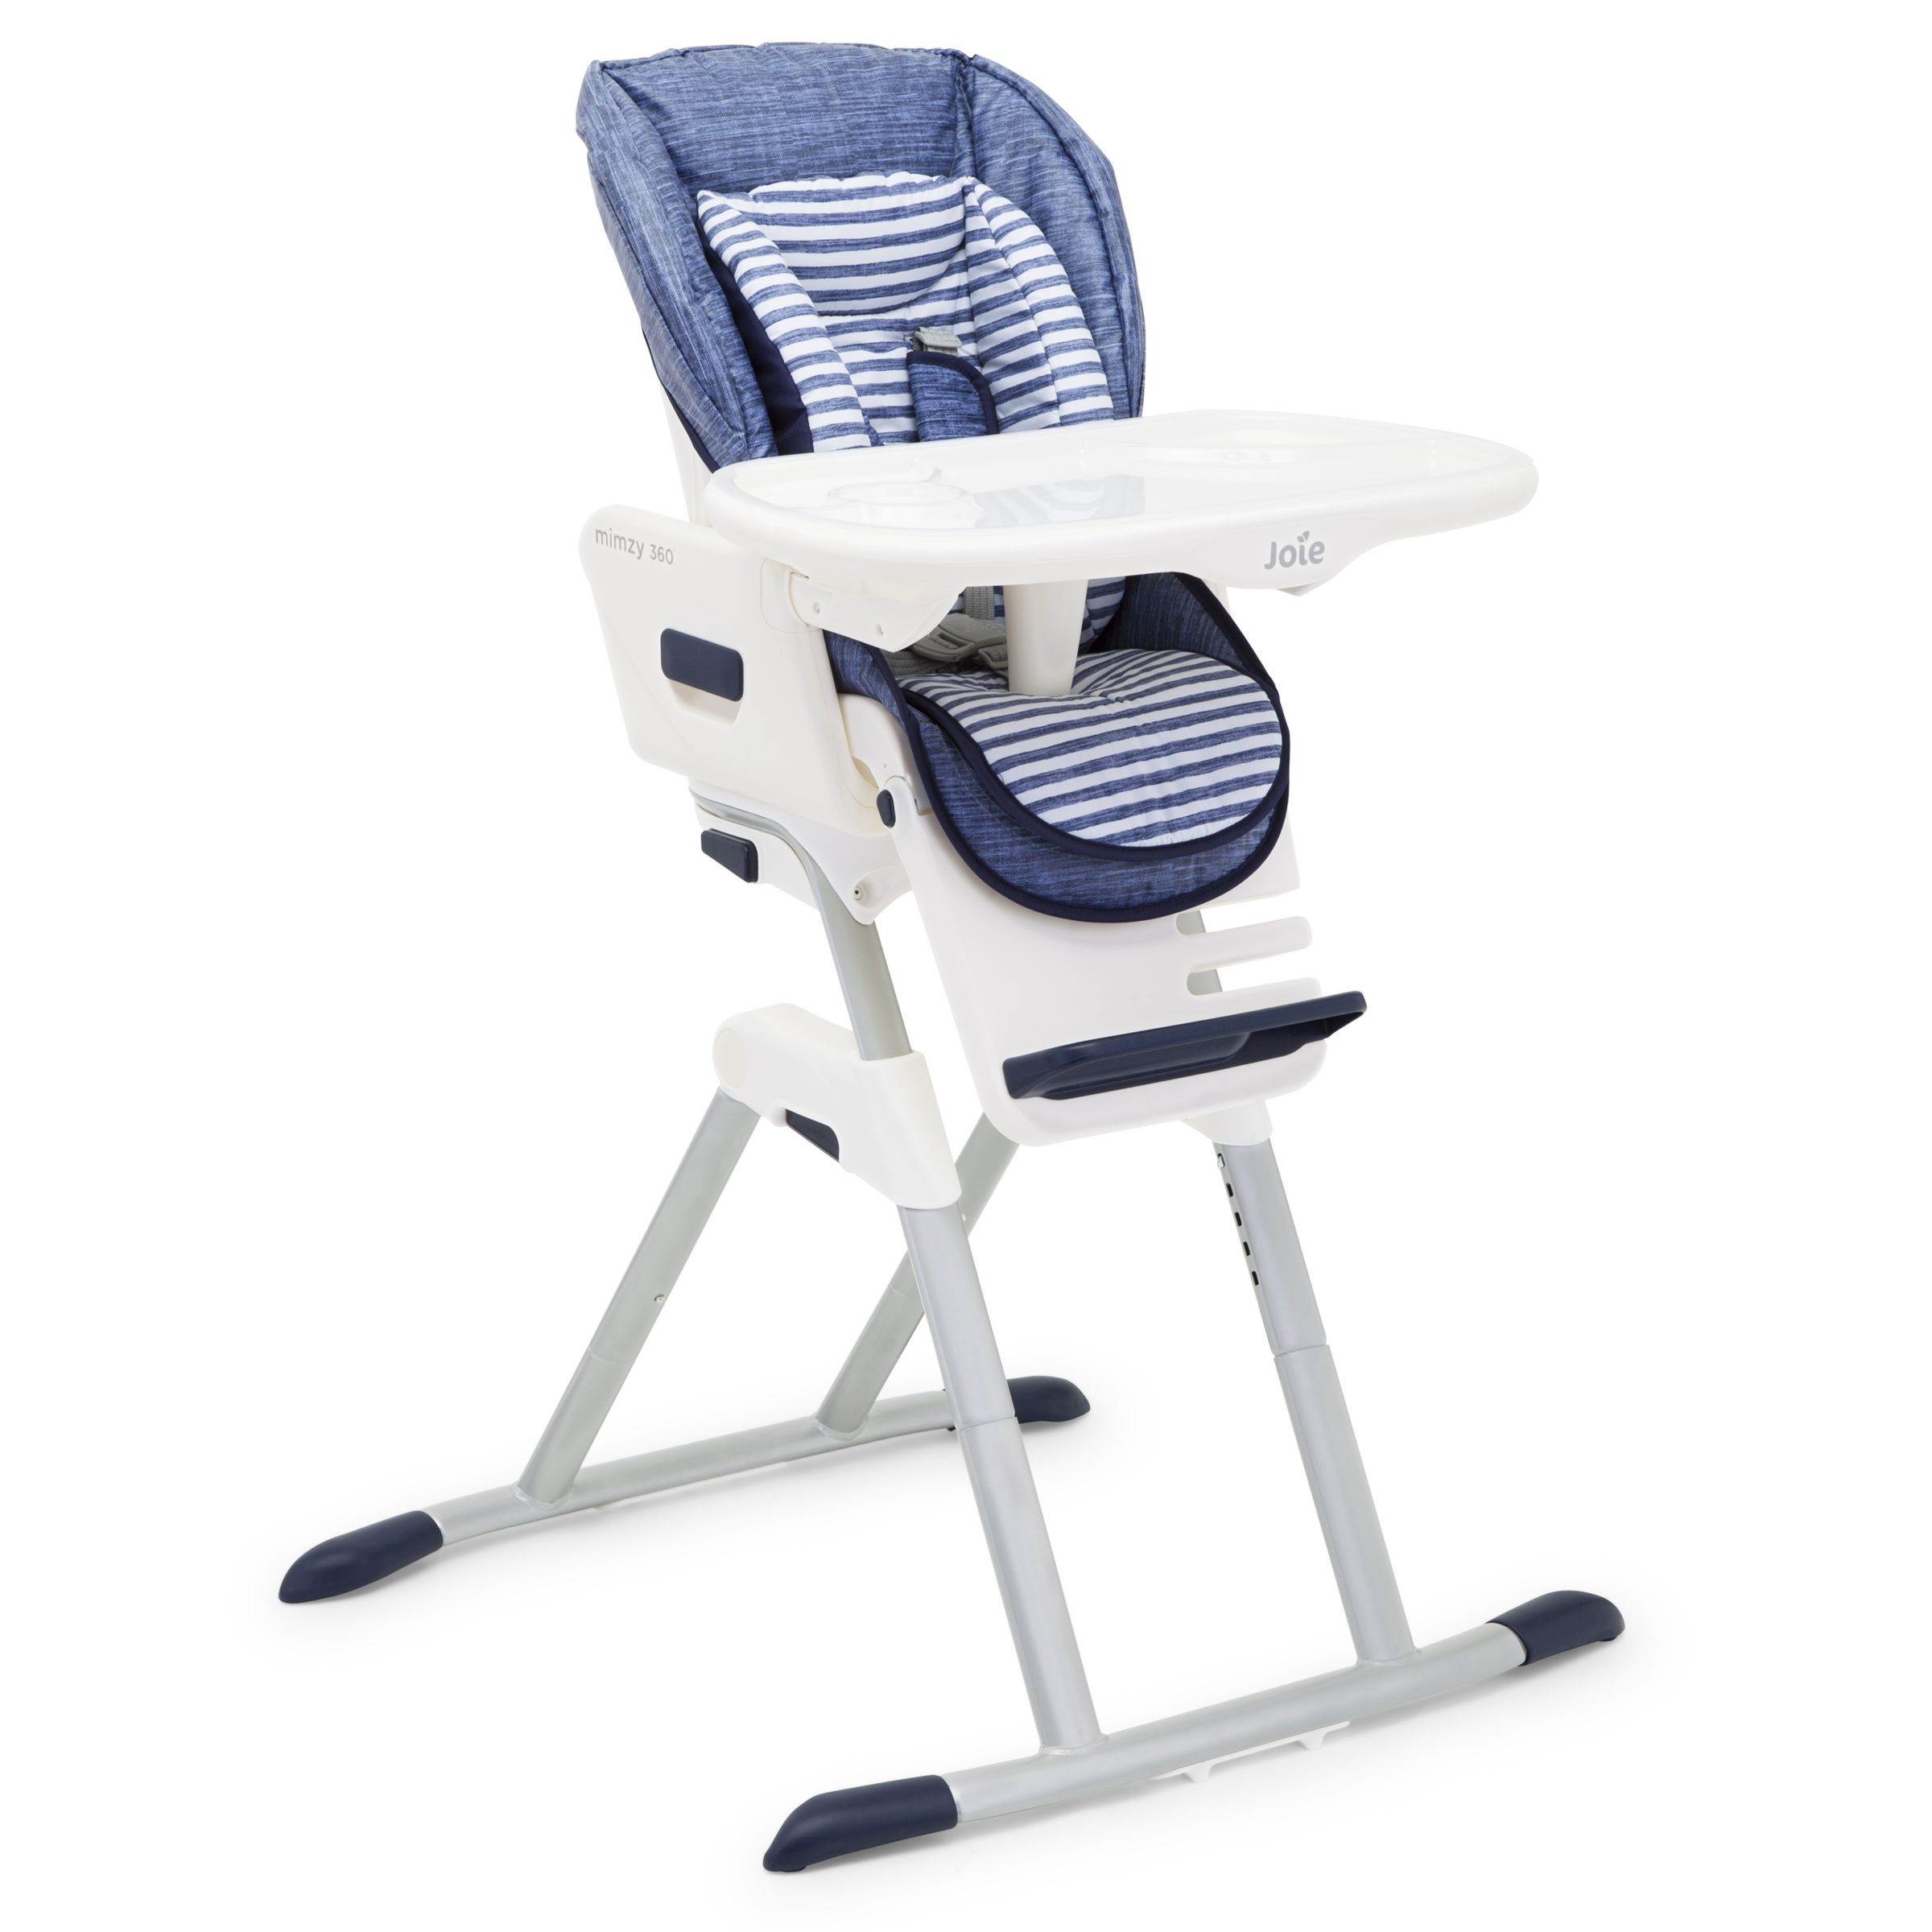 Joie Baby High Chair John Lewis Joie Baby Mimzy 360 Highchair Denim At John Lewis